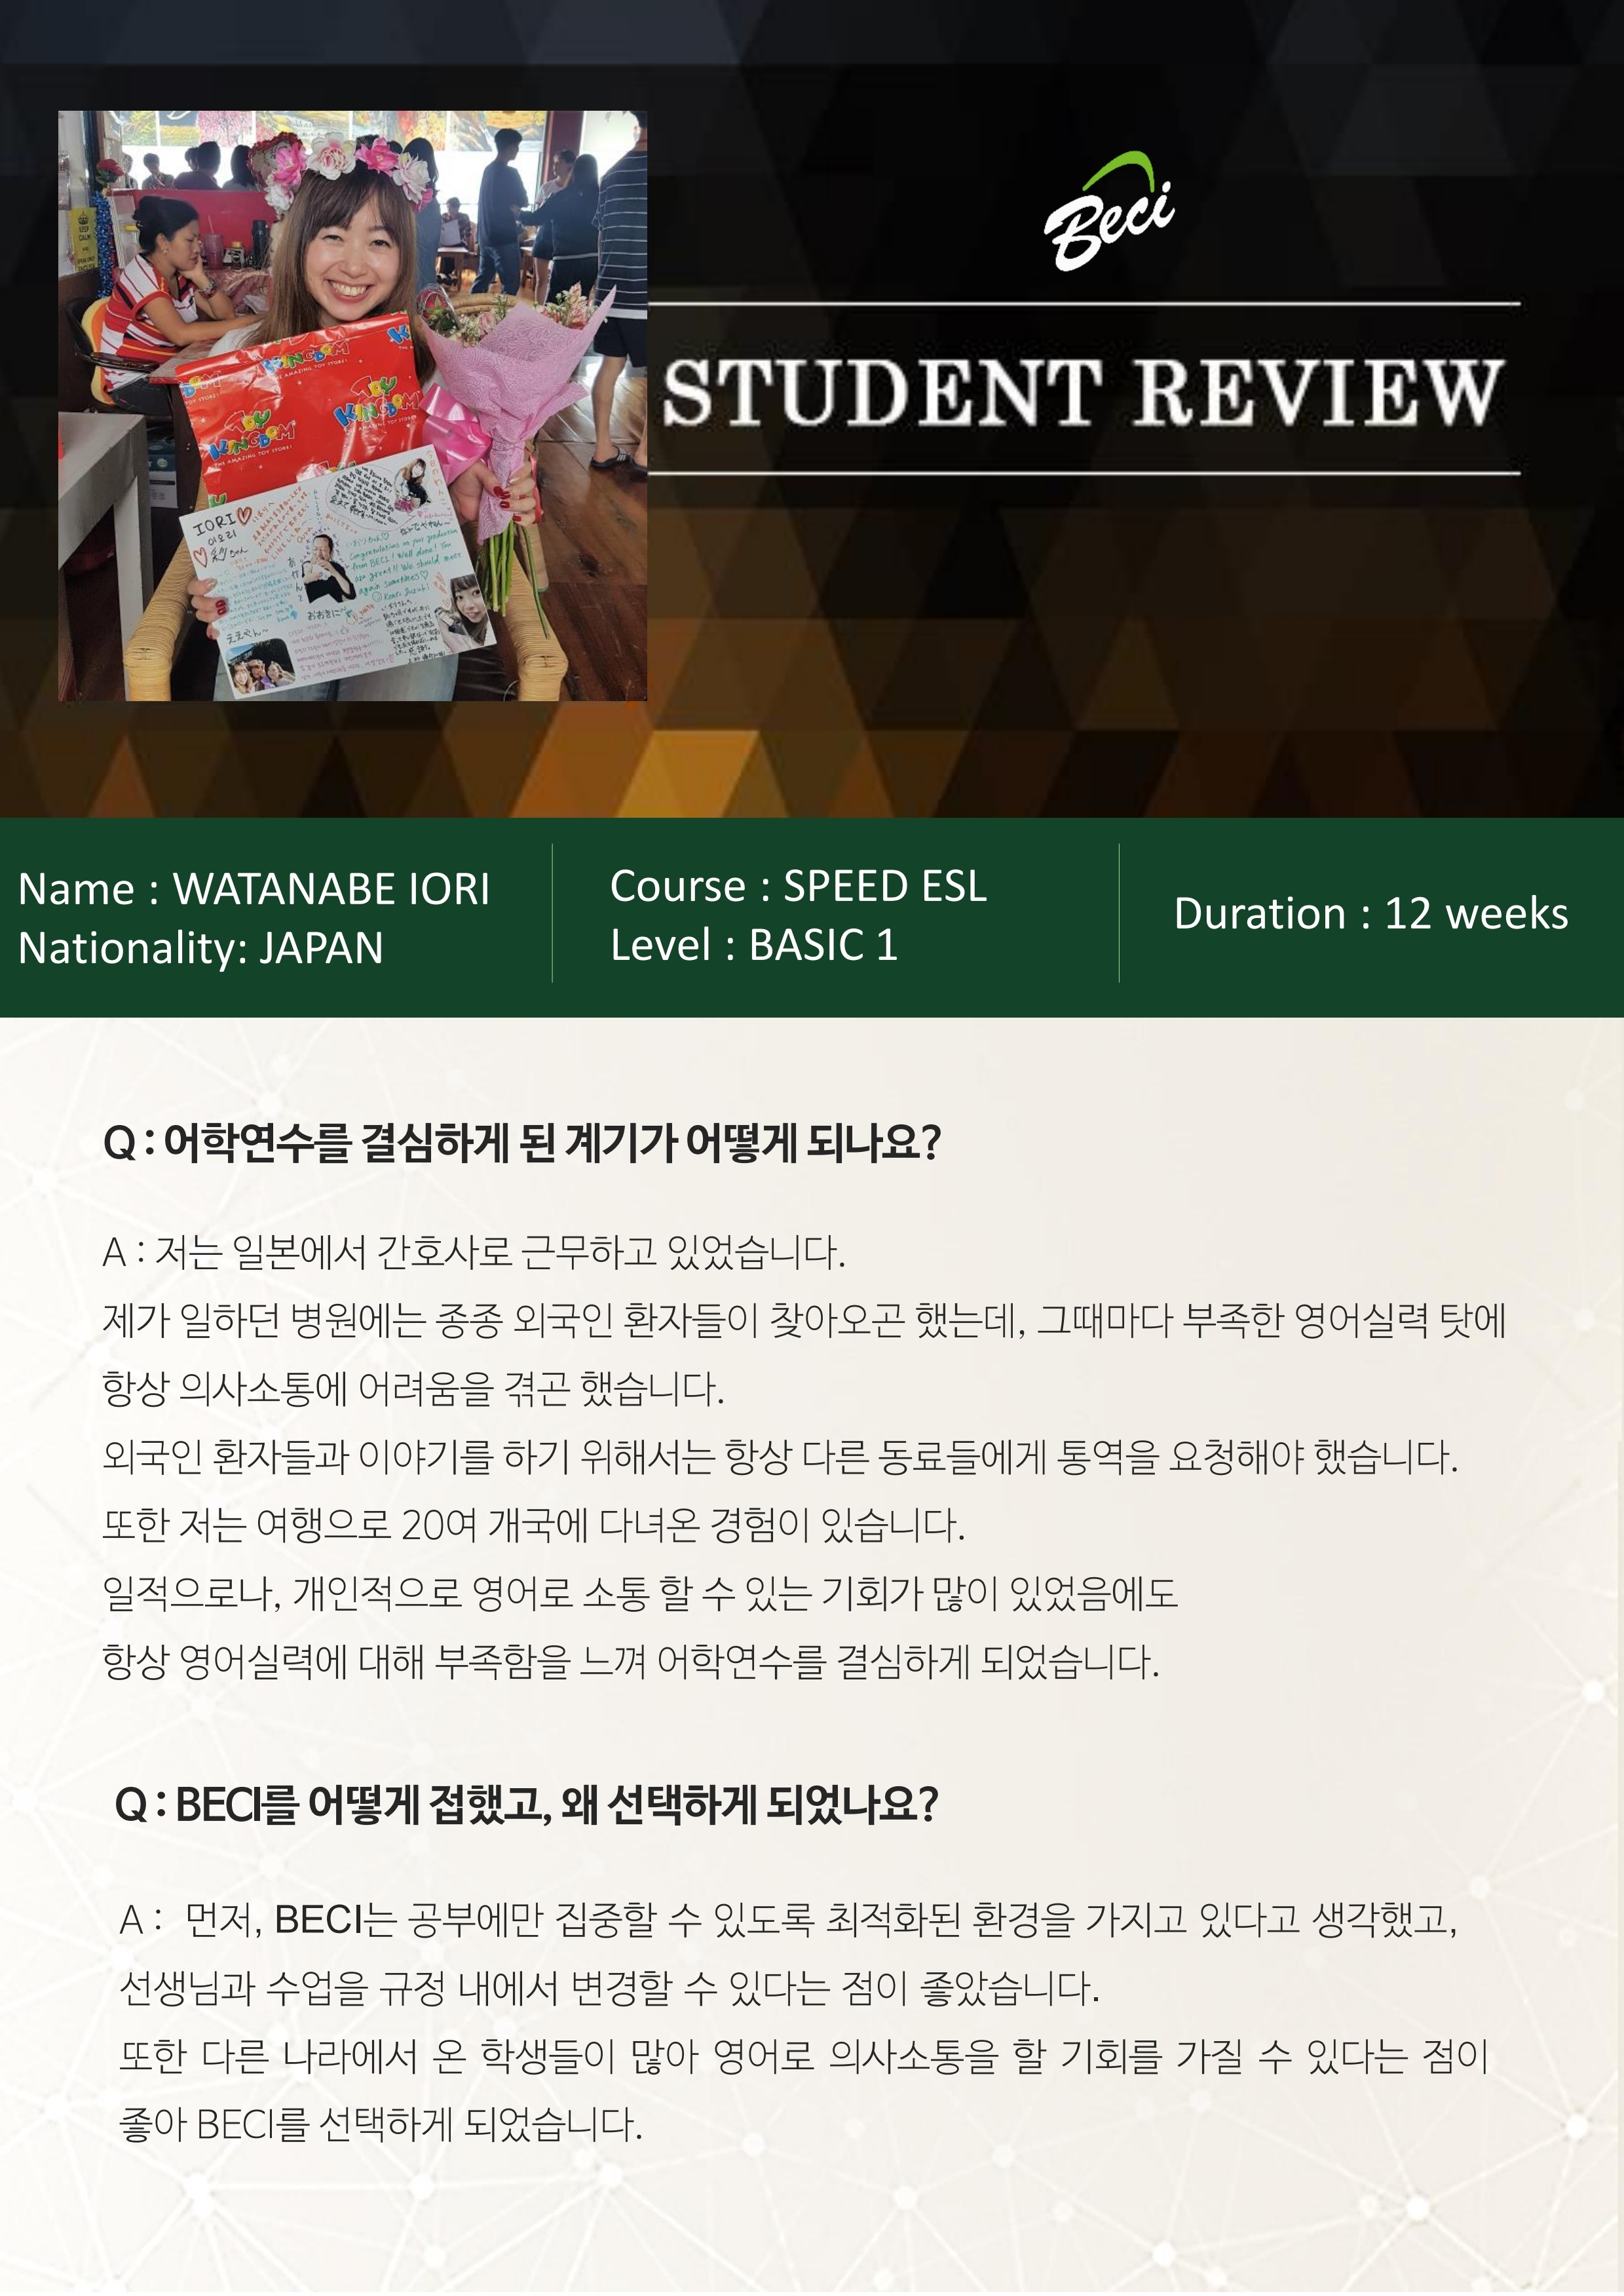 BECI_students review_ JP English ver.pdf_page_1